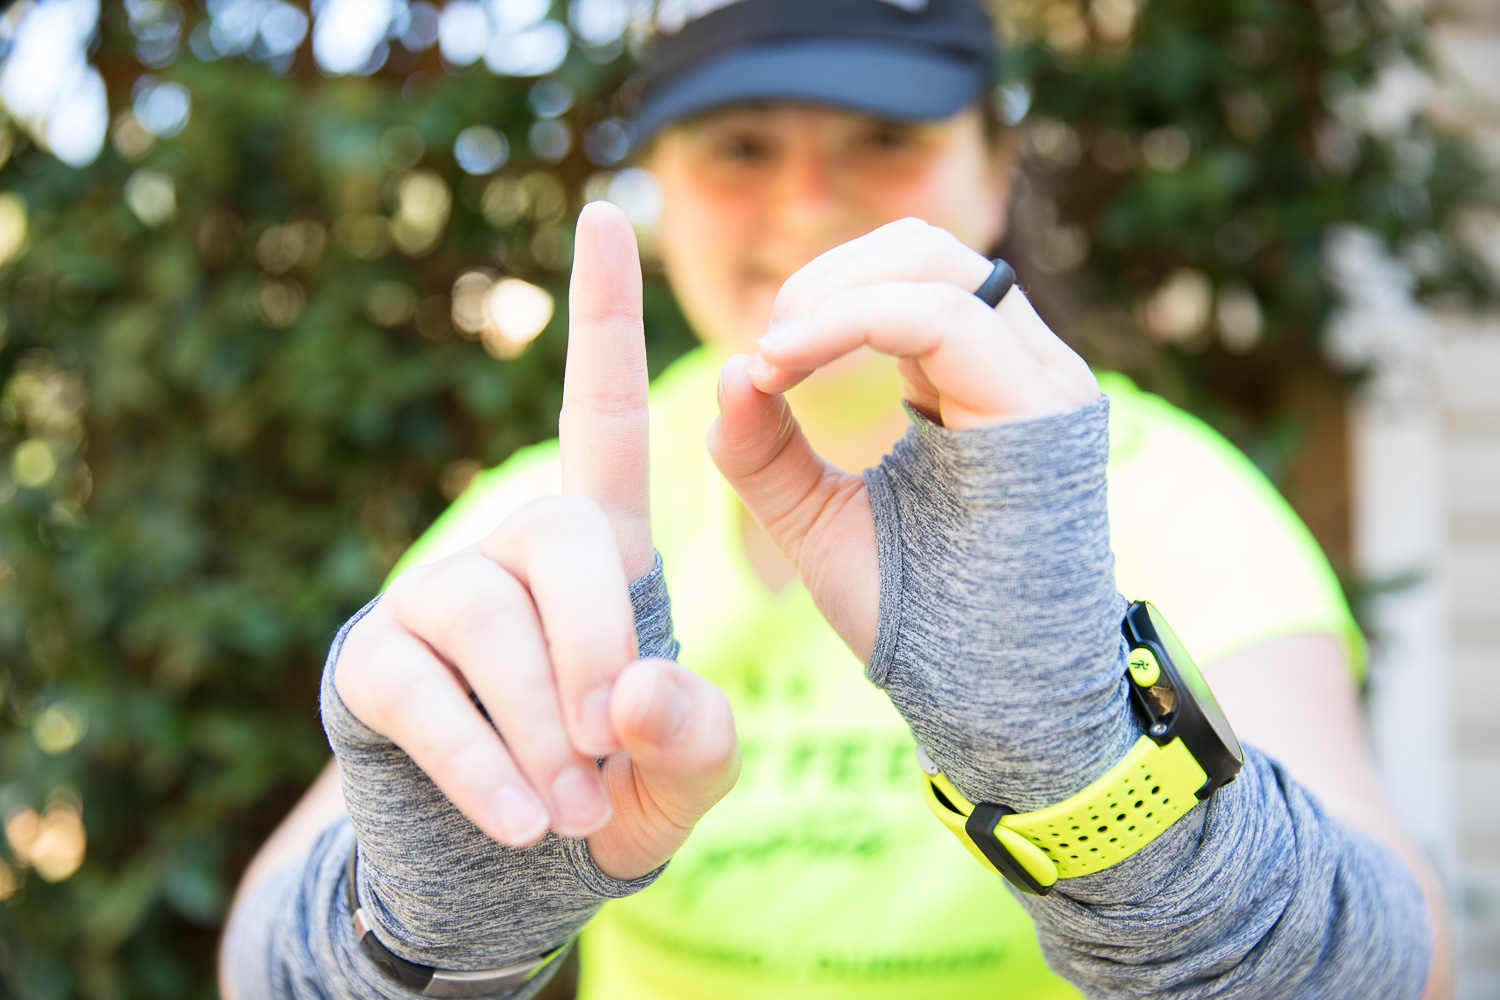 10 miles can be an exhausting long run - here are 4 reasons not to race your long run!